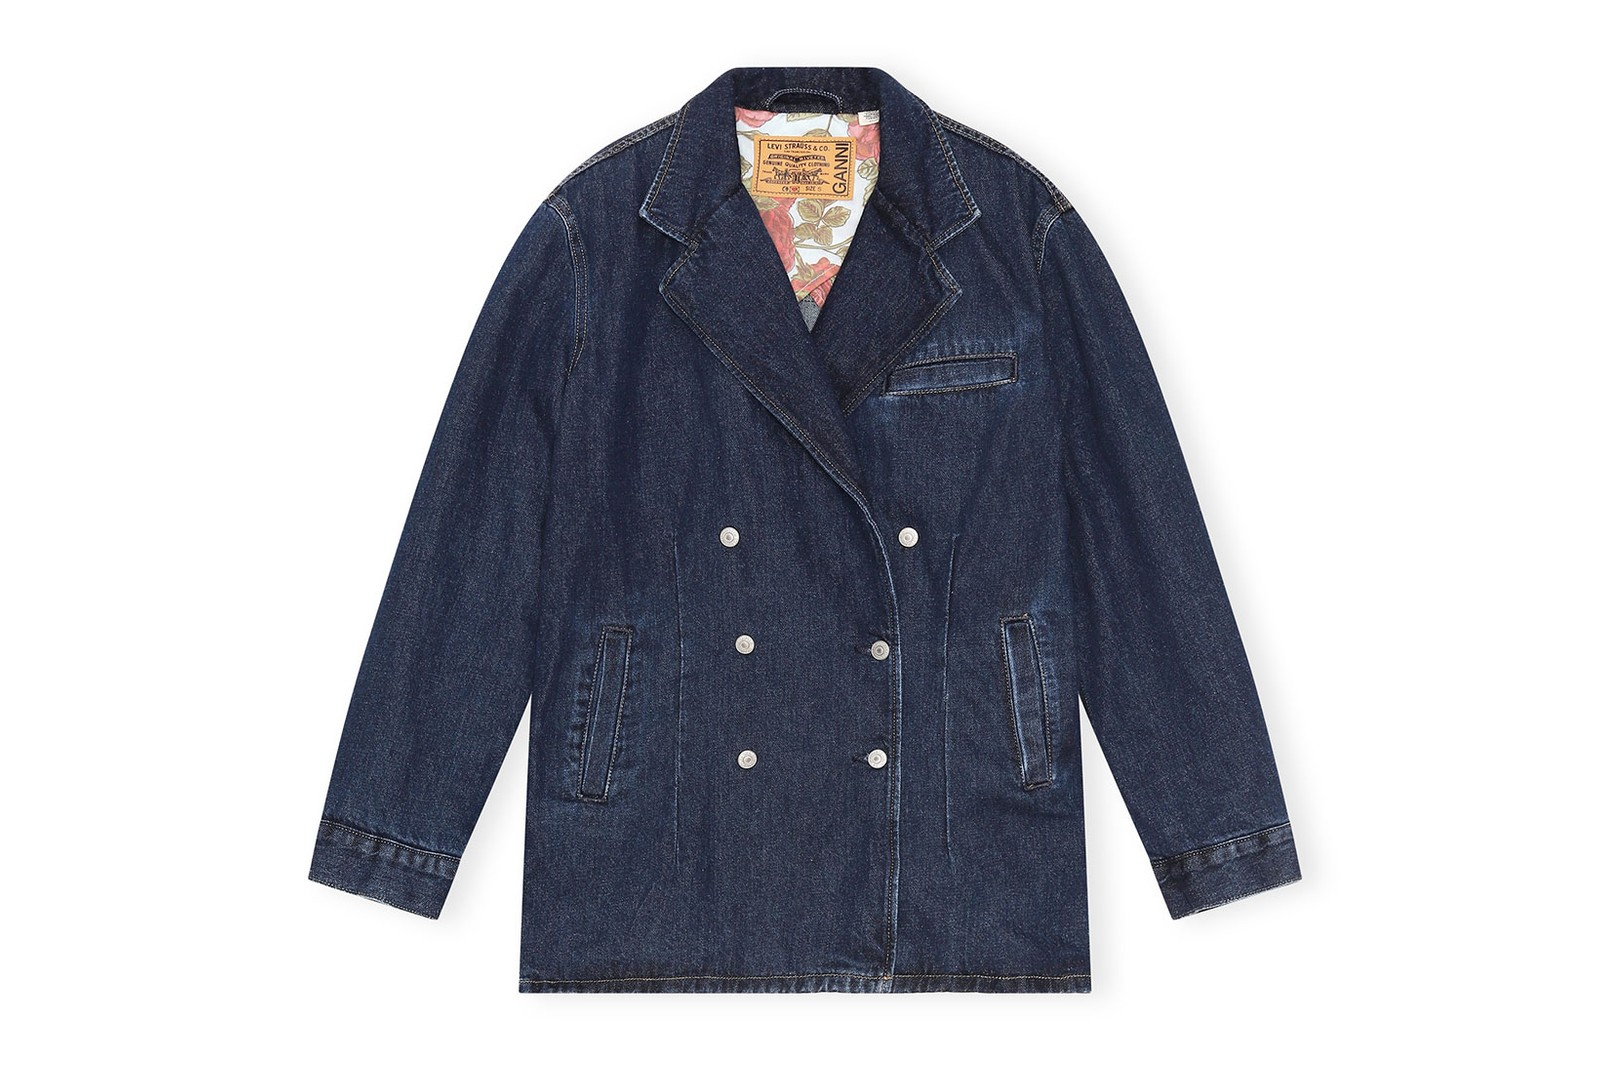 levis ganni denim jeans collaboration spring summer sustainable jackets dresses pants price where to buy